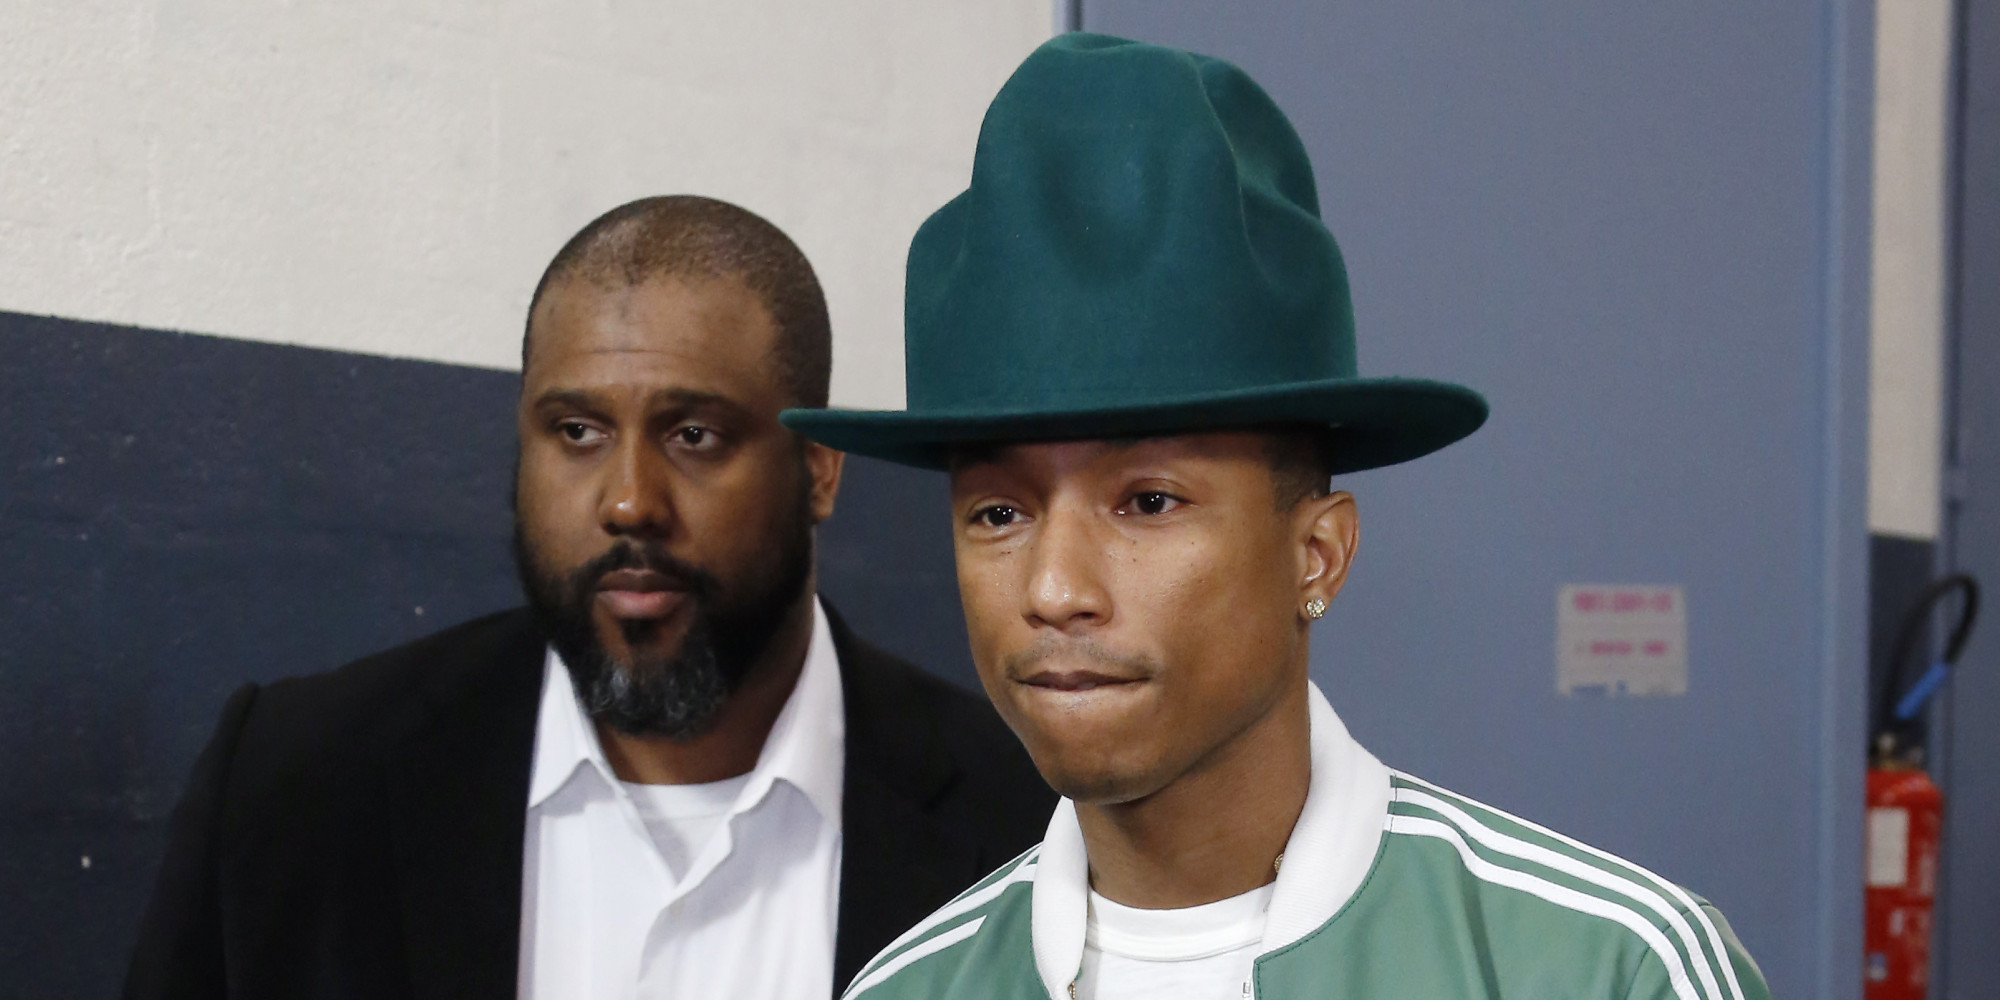 Pharrell Hat Designer Pharrell Williams' Grammys Hat